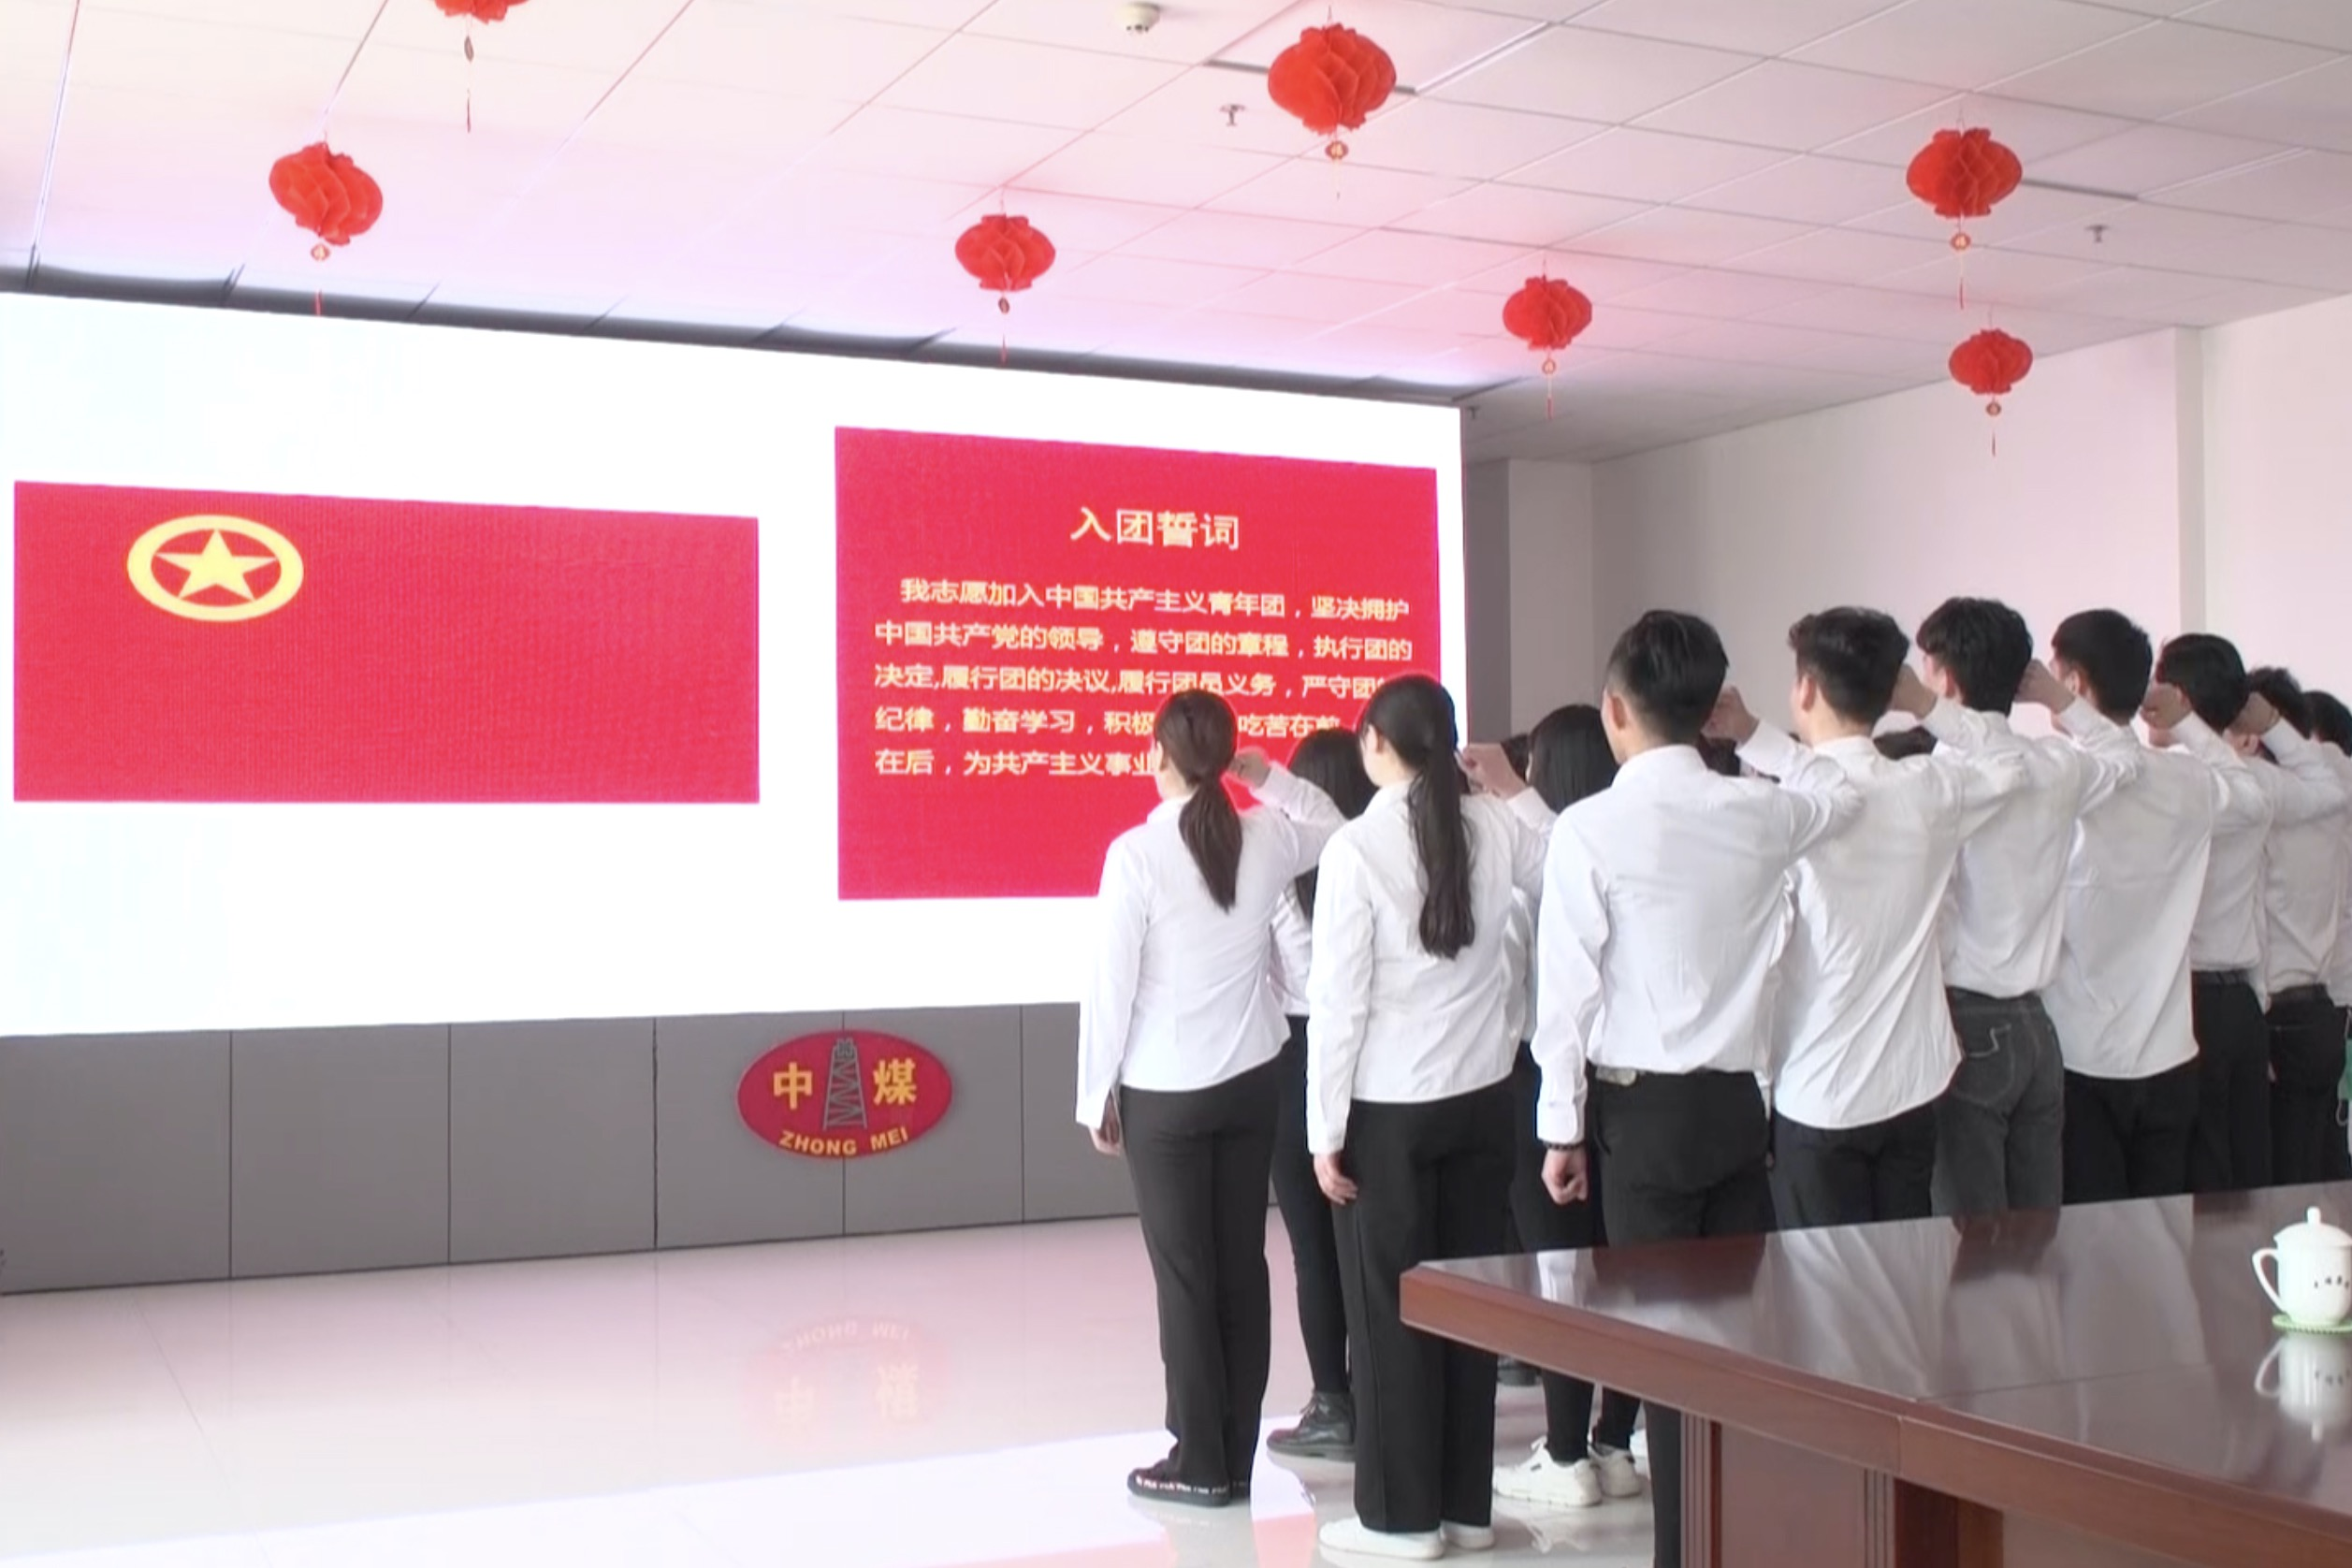 China Coal Group Organization Carry Out Celebrate Youth Day Theme Activity